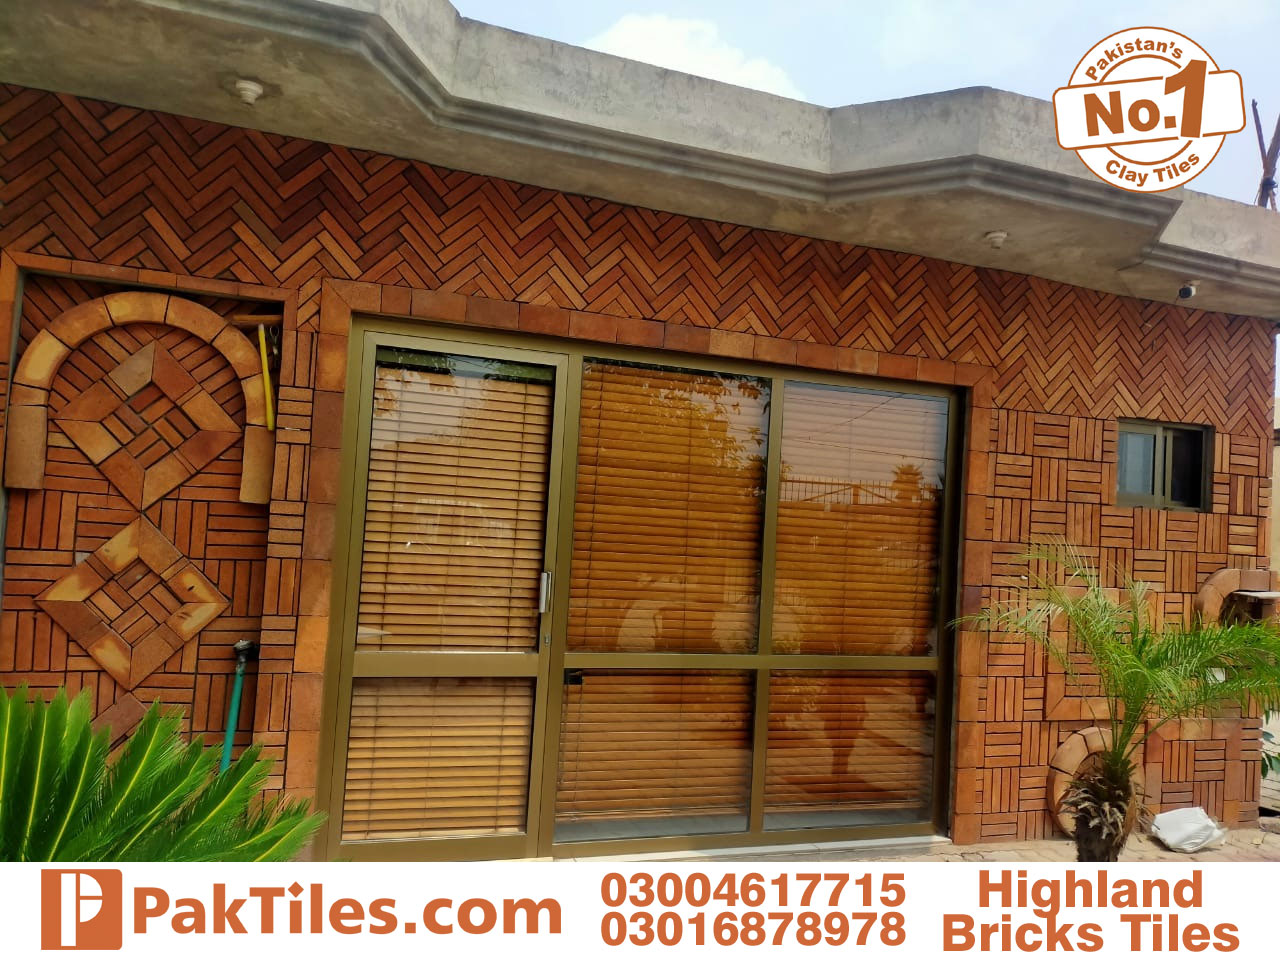 Yellow Lahori Gutka Bricks Tiles